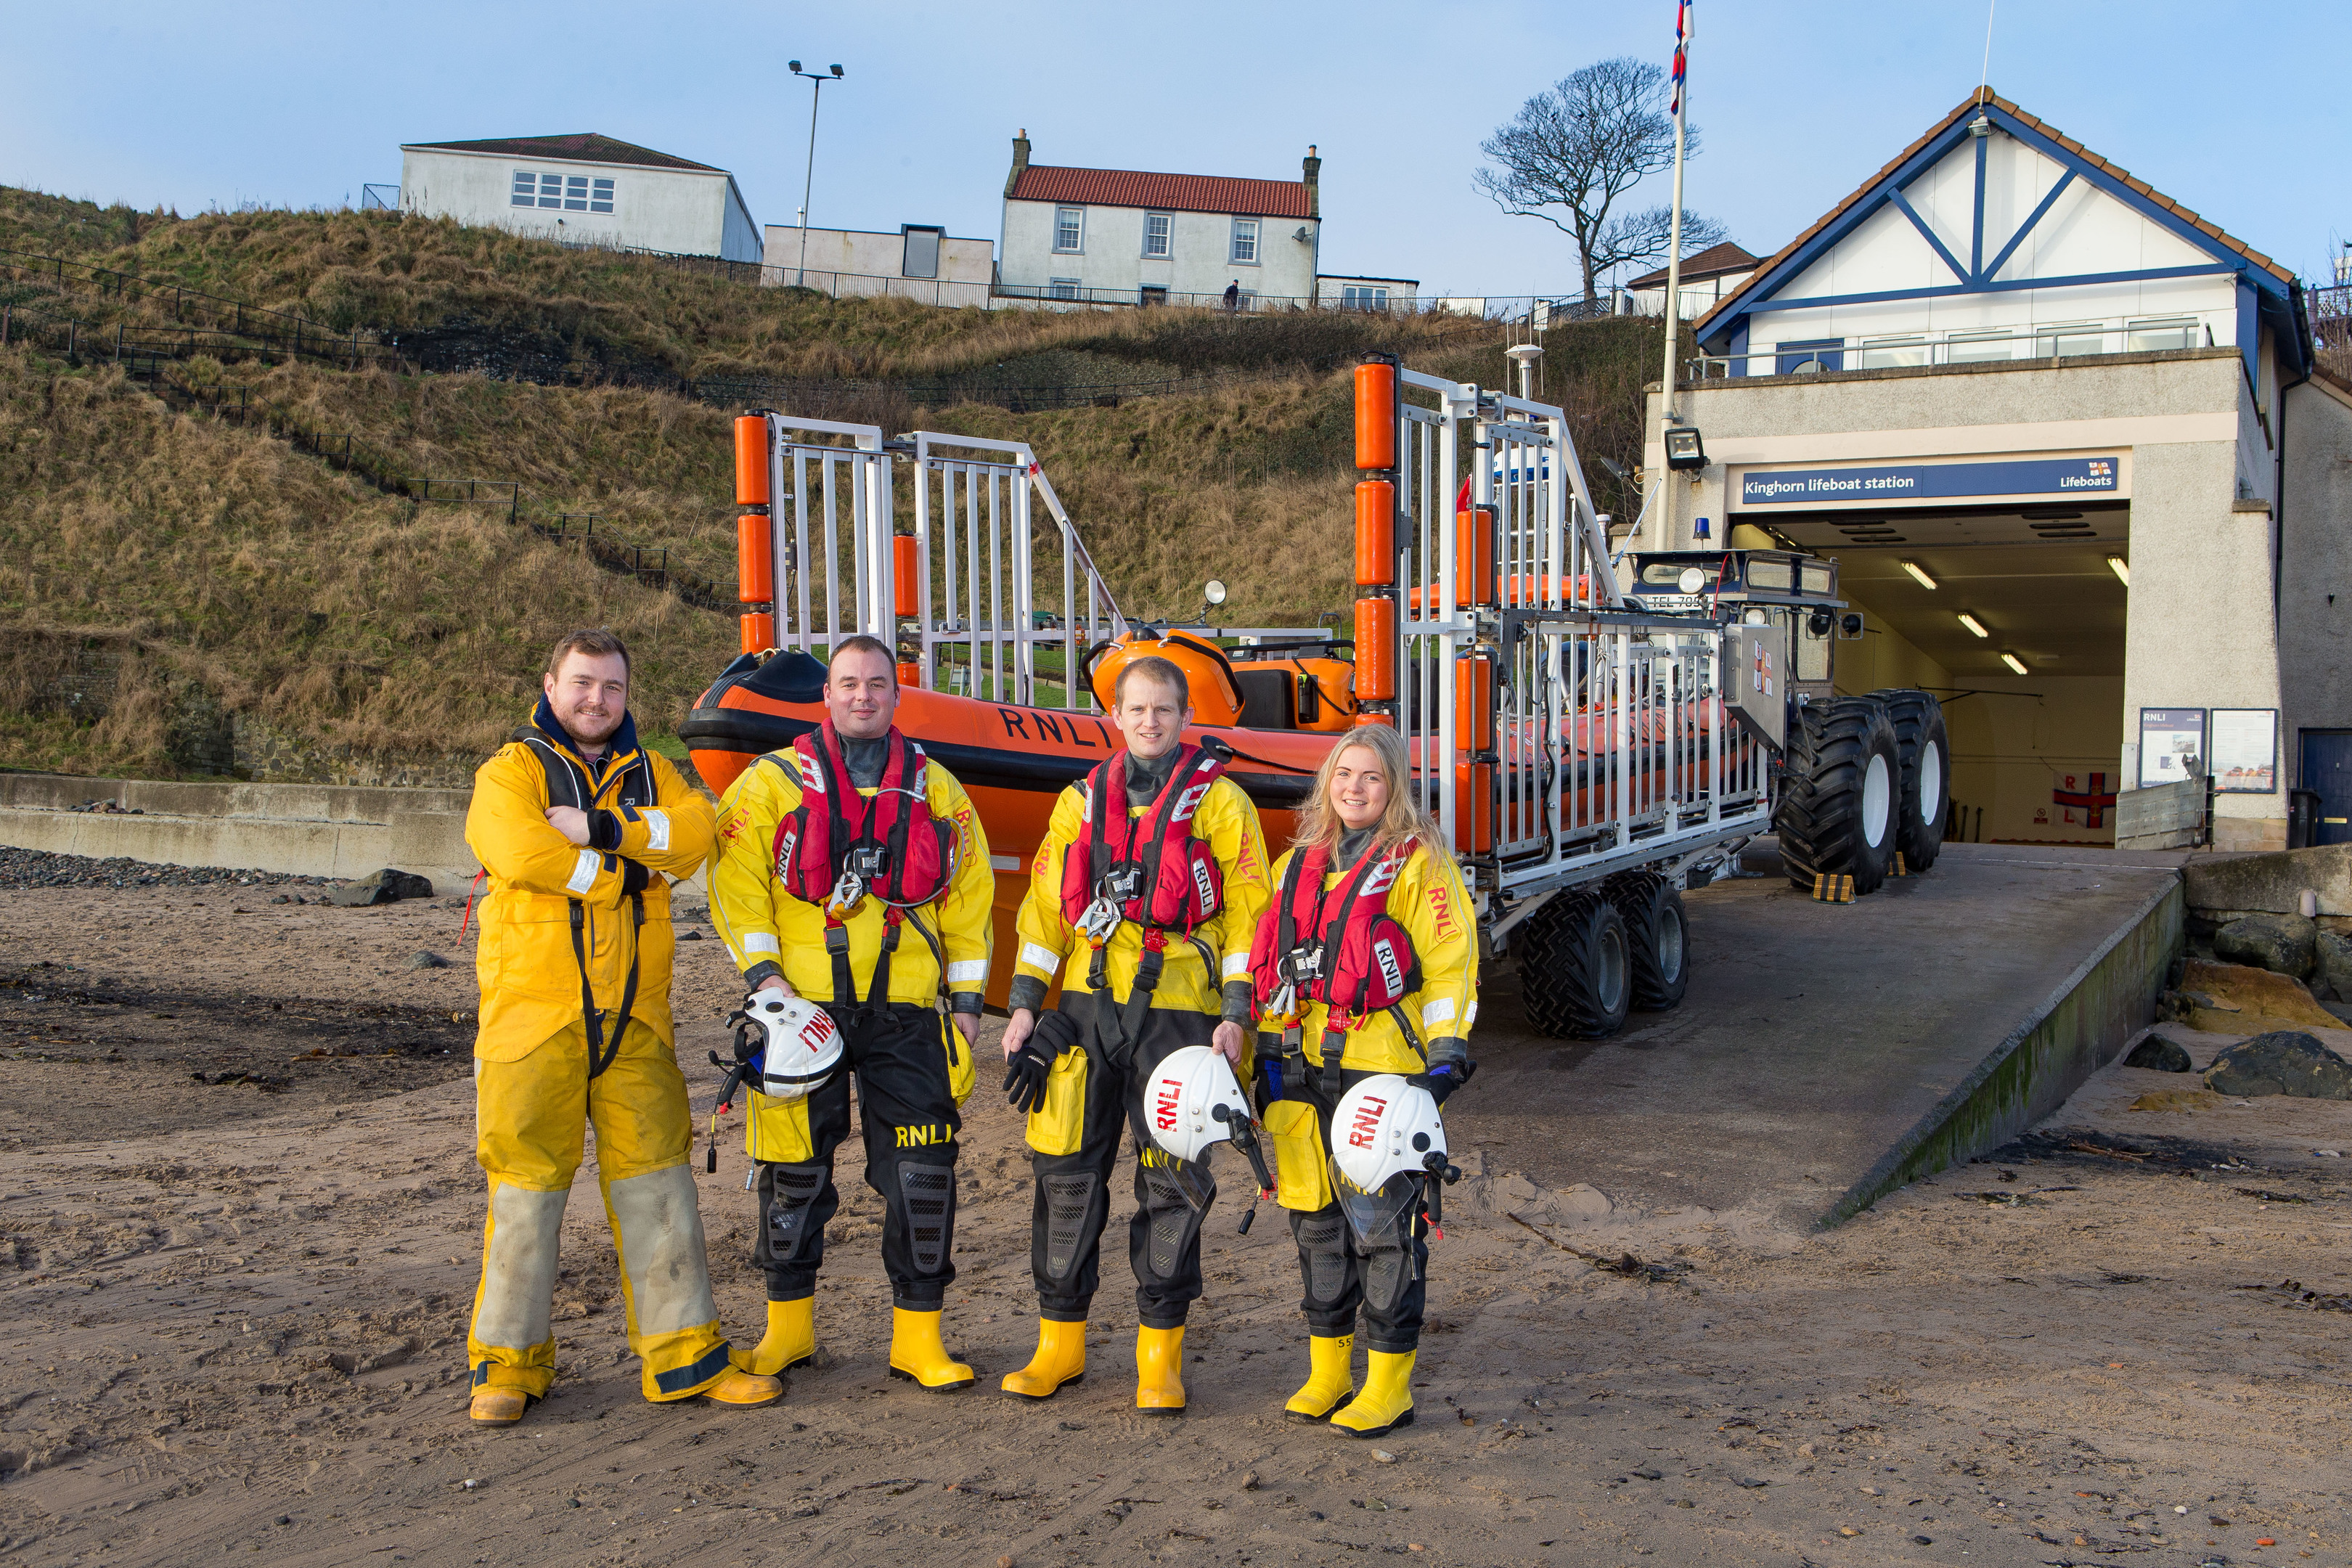 Pictured: Crew Kenny Davidson, Richard Malcomson, Neil Chalmers and Megan Davidson from RNLI Lifeboat at Kinghorn.